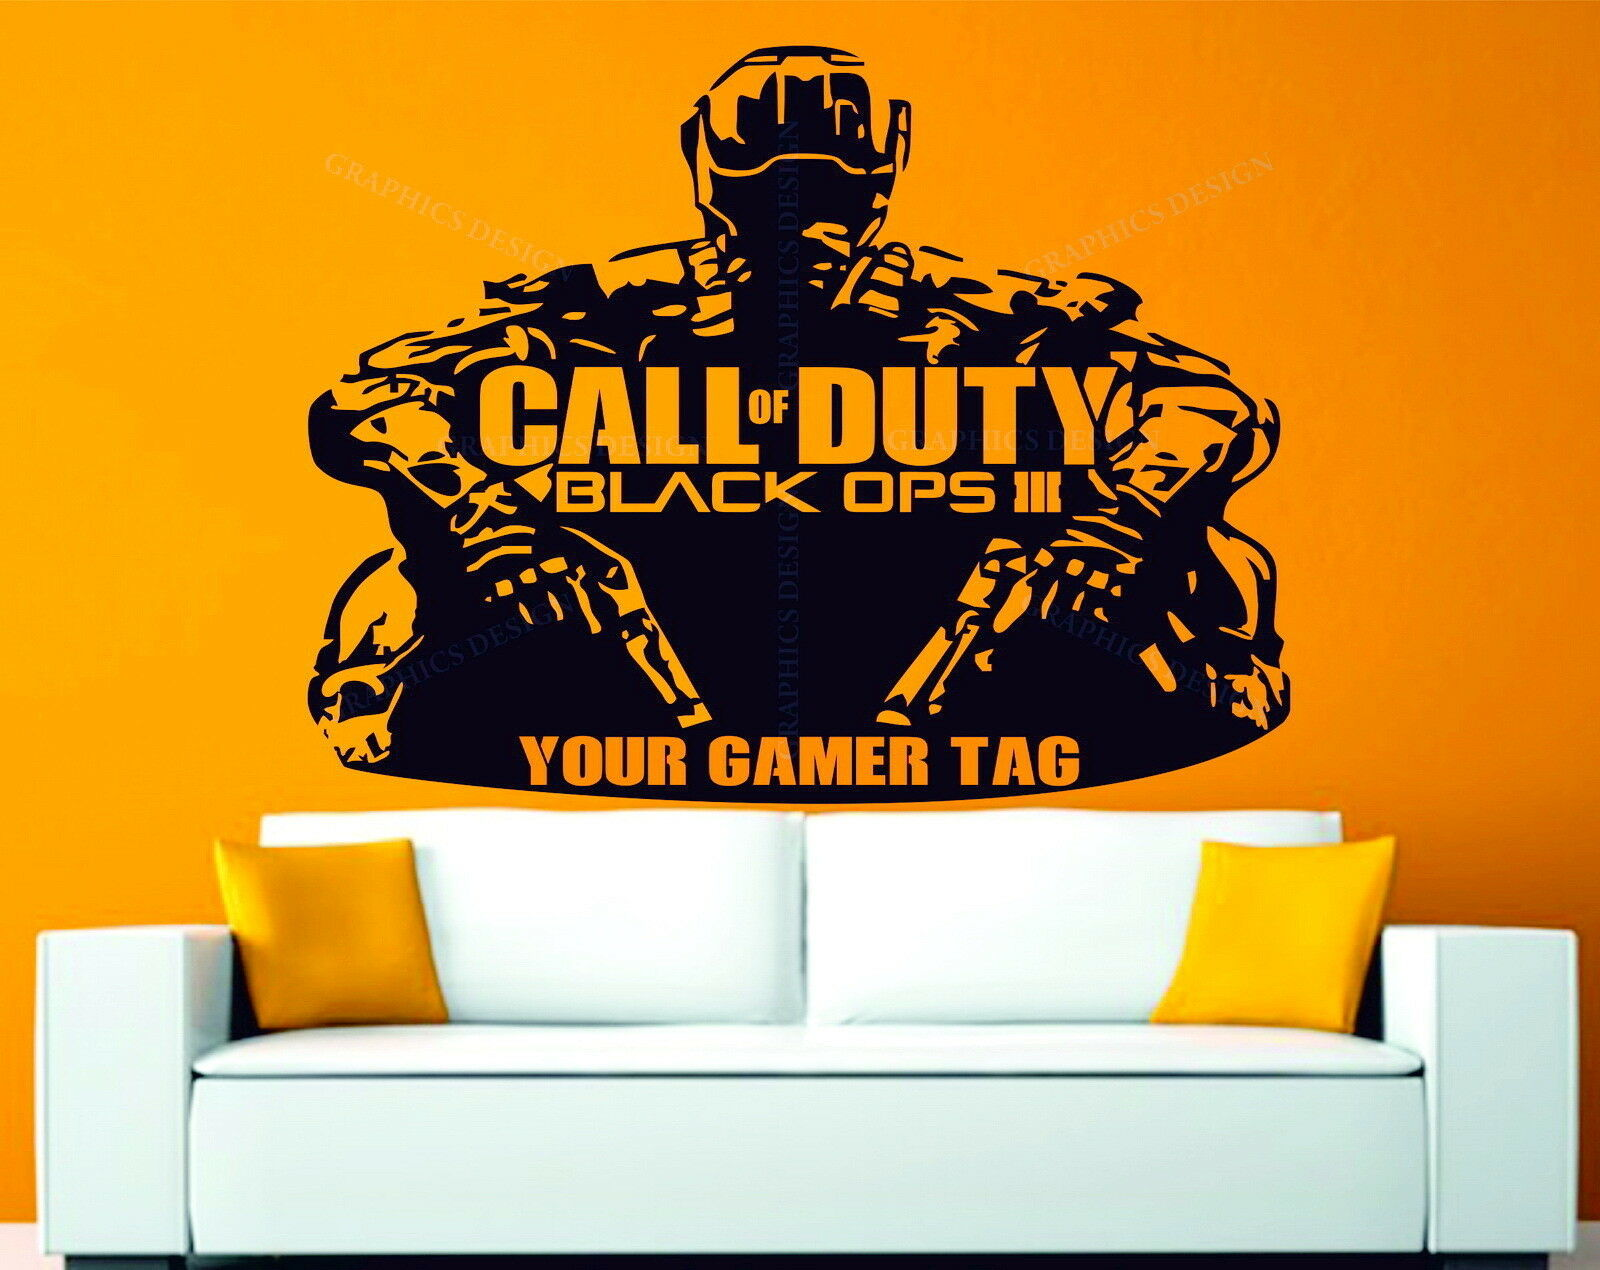 call of duty black ops 3 personalised gamer tag decor vinyl wall